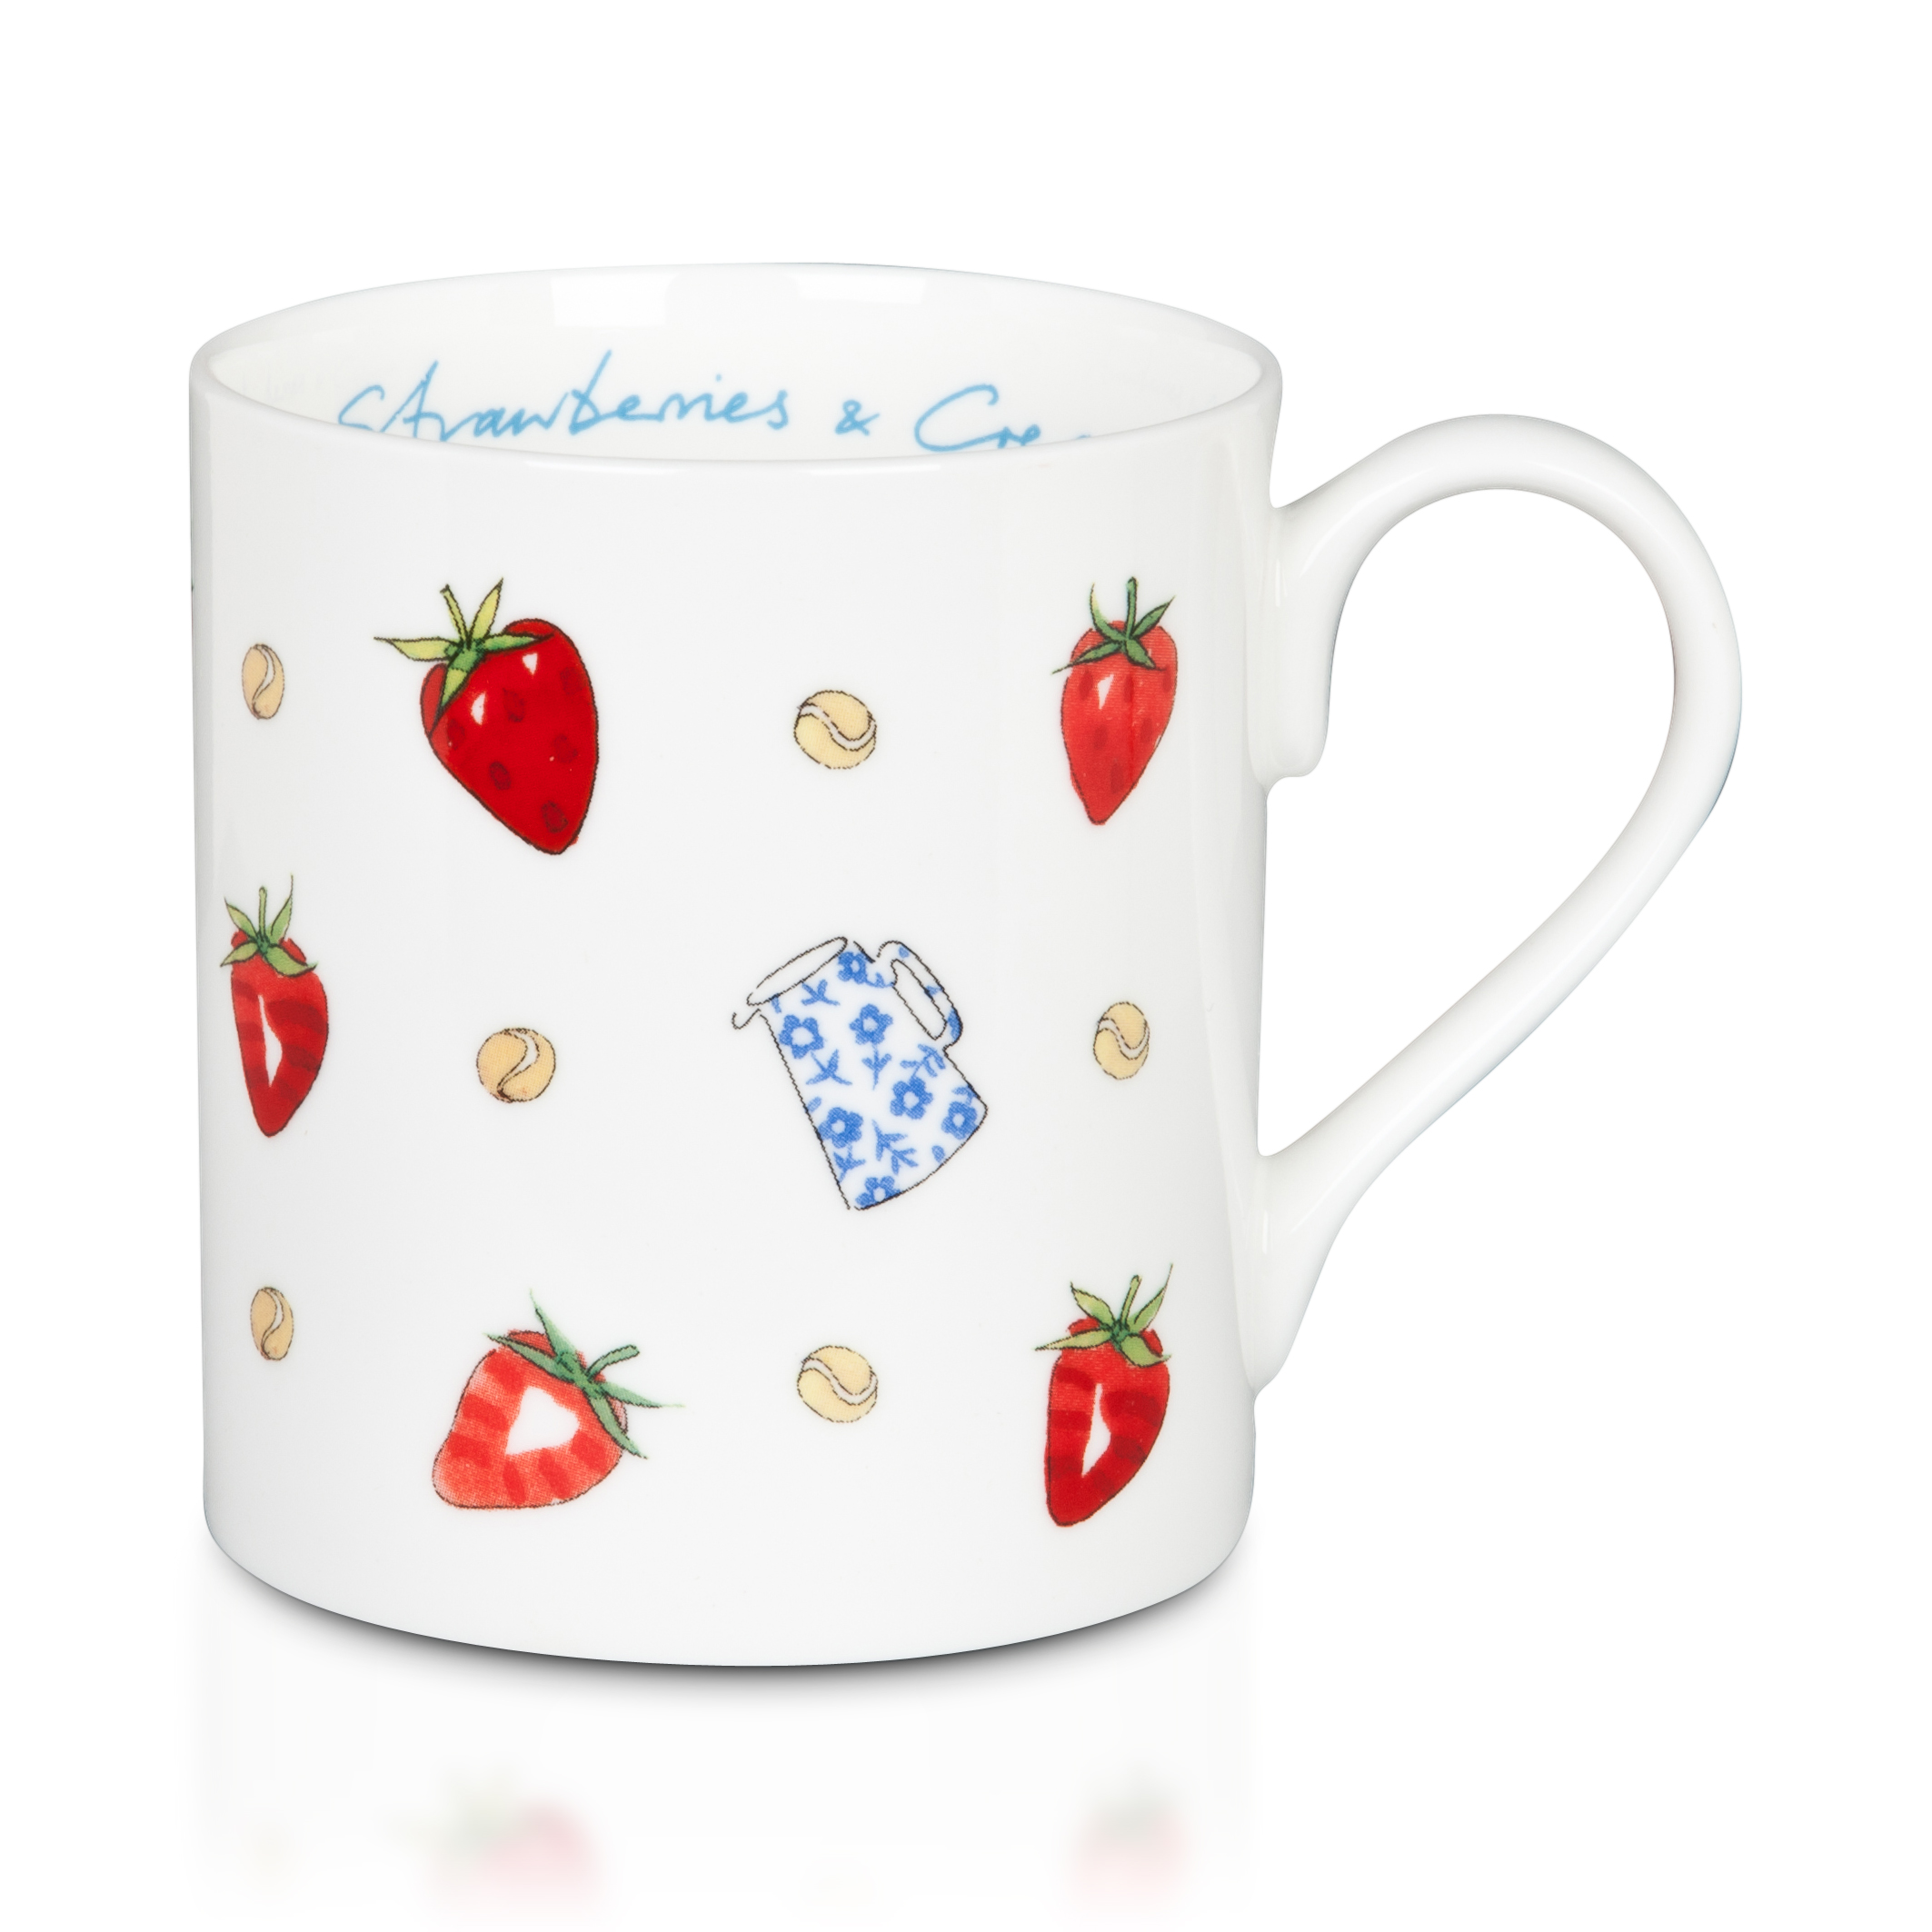 Wimbledon Strawberries and Cream Mug - White